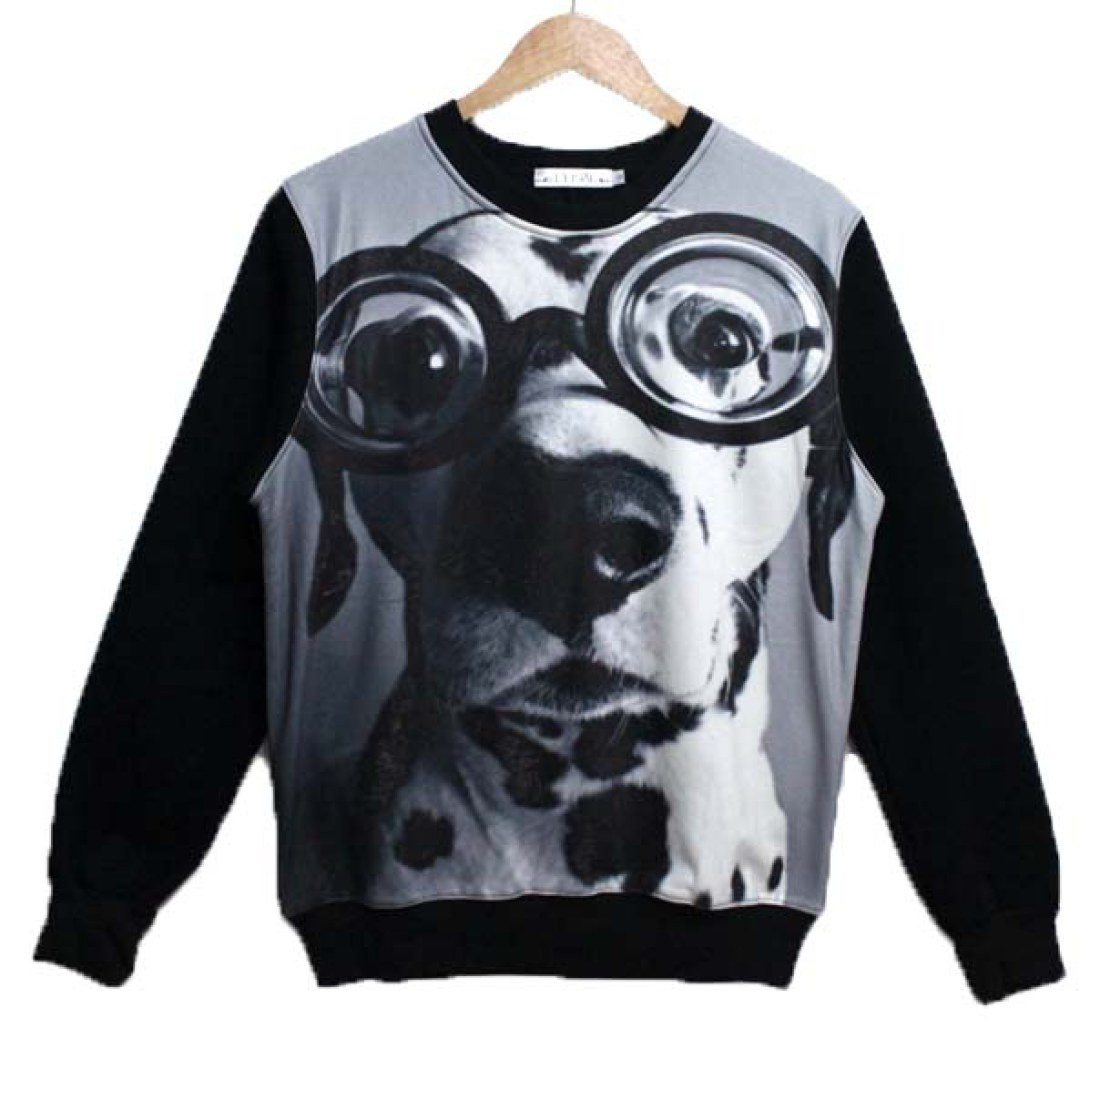 Adorable Dalmatian Wearing Glasses Dog Face Graphic Print Sweater